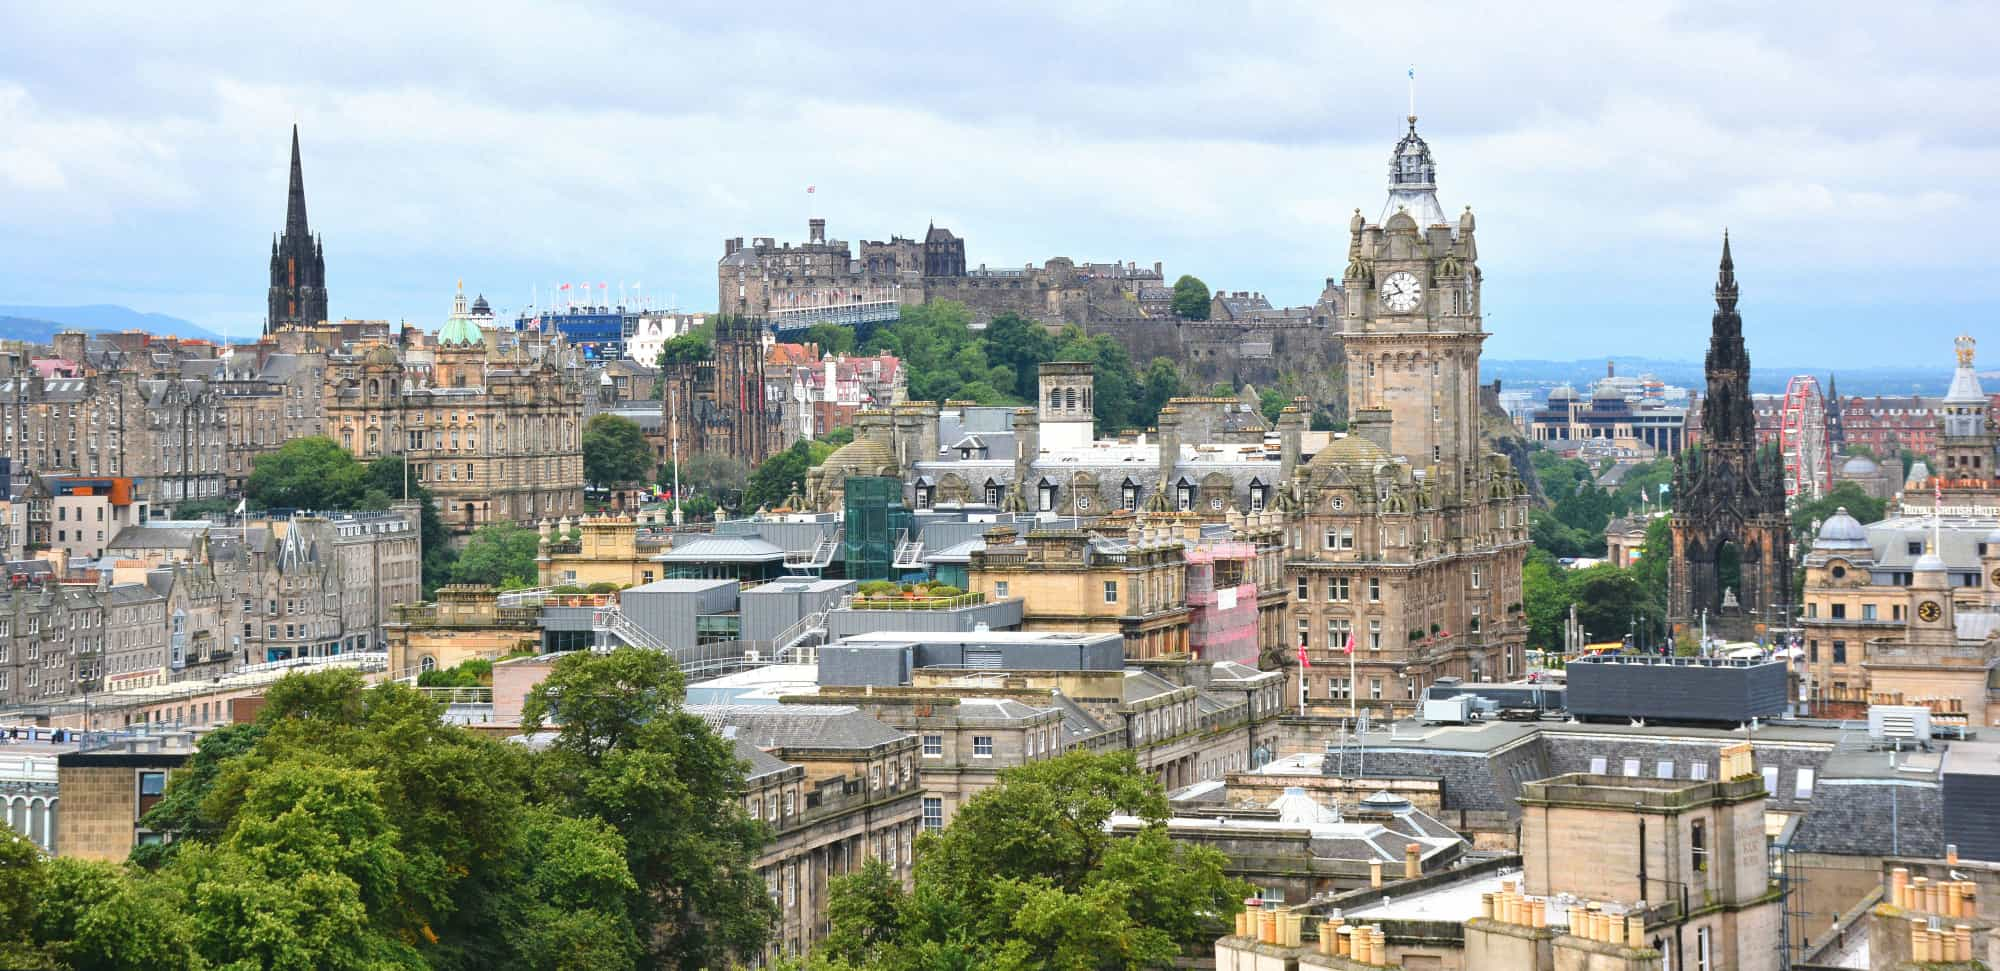 https://blog.trekaroo.com/wp-content/uploads/2019/03/Things-To-Do-In-Edinburgh-Photo-by-Flickr-Mike-McBey.jpg